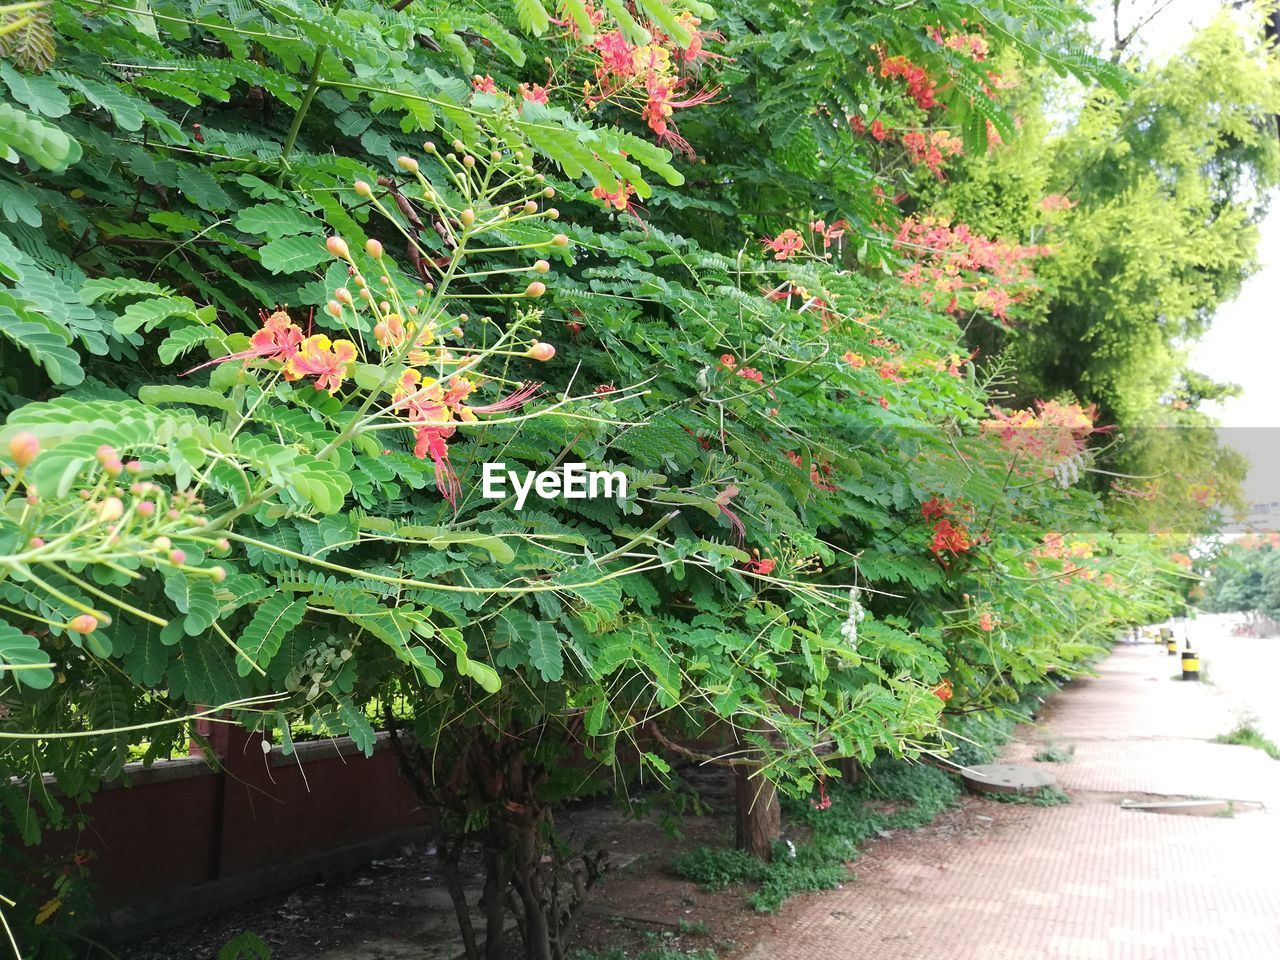 plant, growth, nature, green color, leaf, plant part, day, beauty in nature, footpath, no people, outdoors, tree, freshness, tranquility, flower, flowering plant, sunlight, red, direction, garden